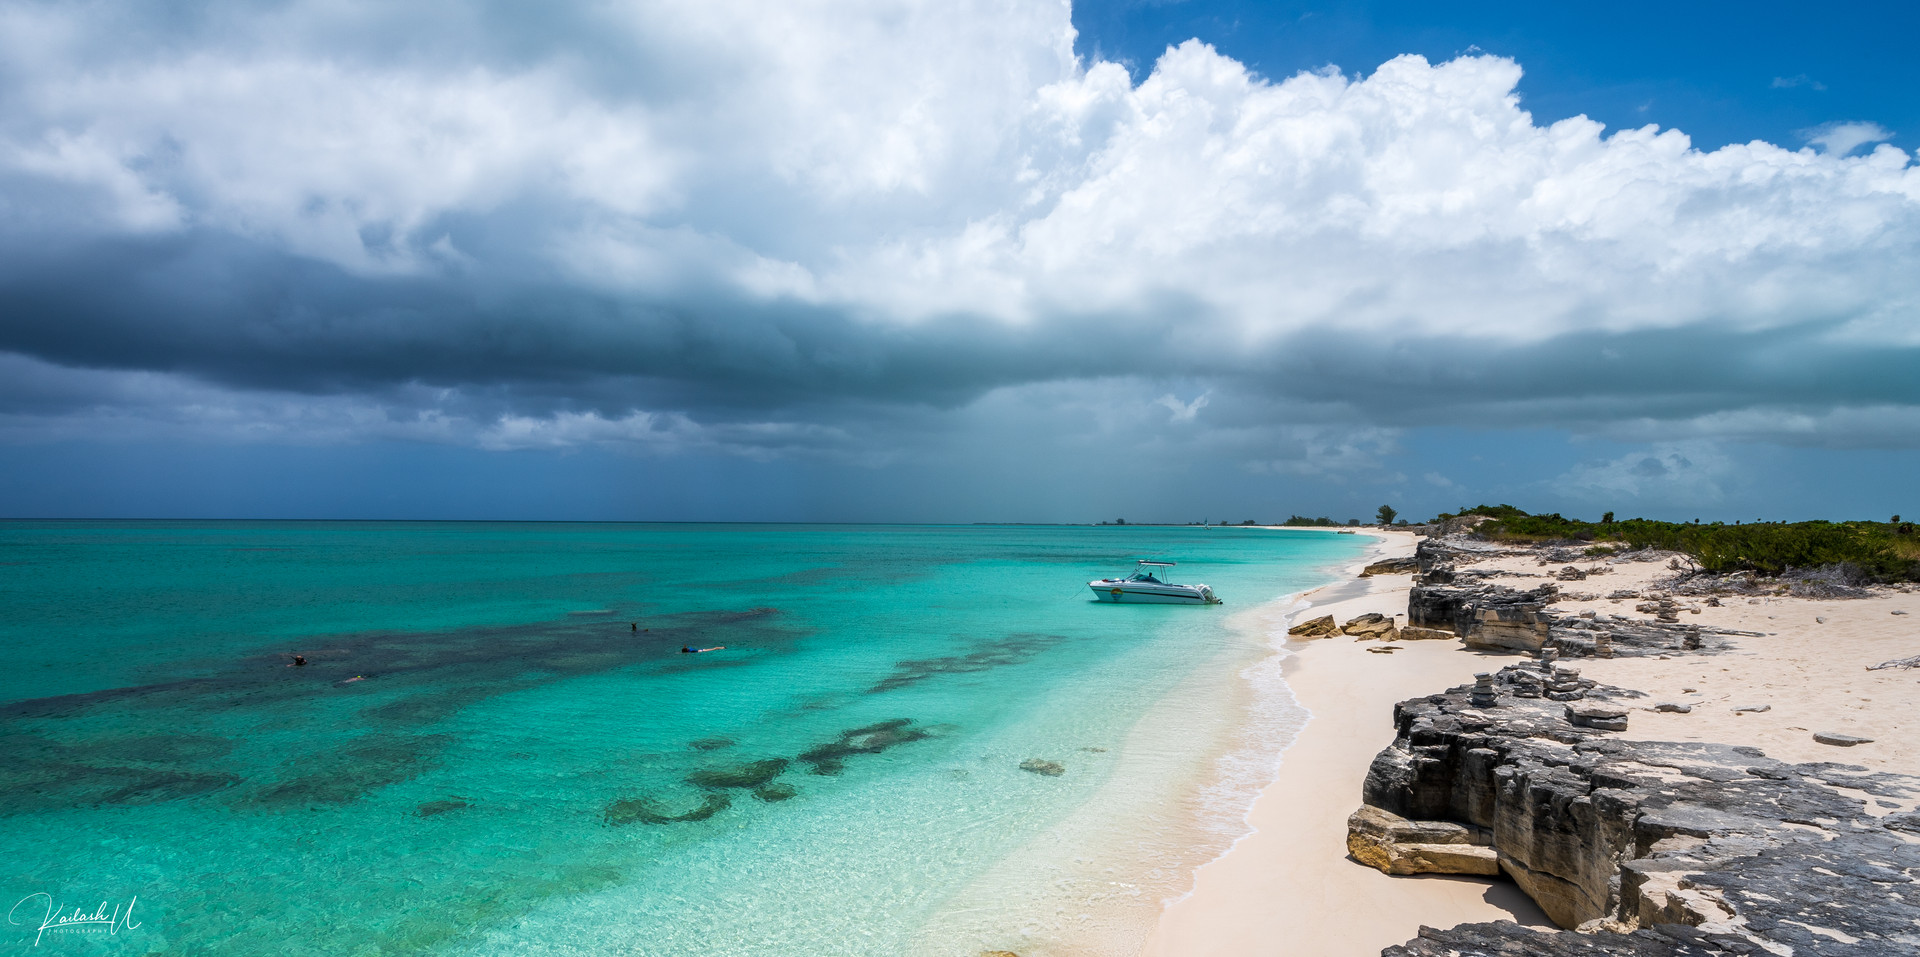 Water Cay, Turks & Caicos